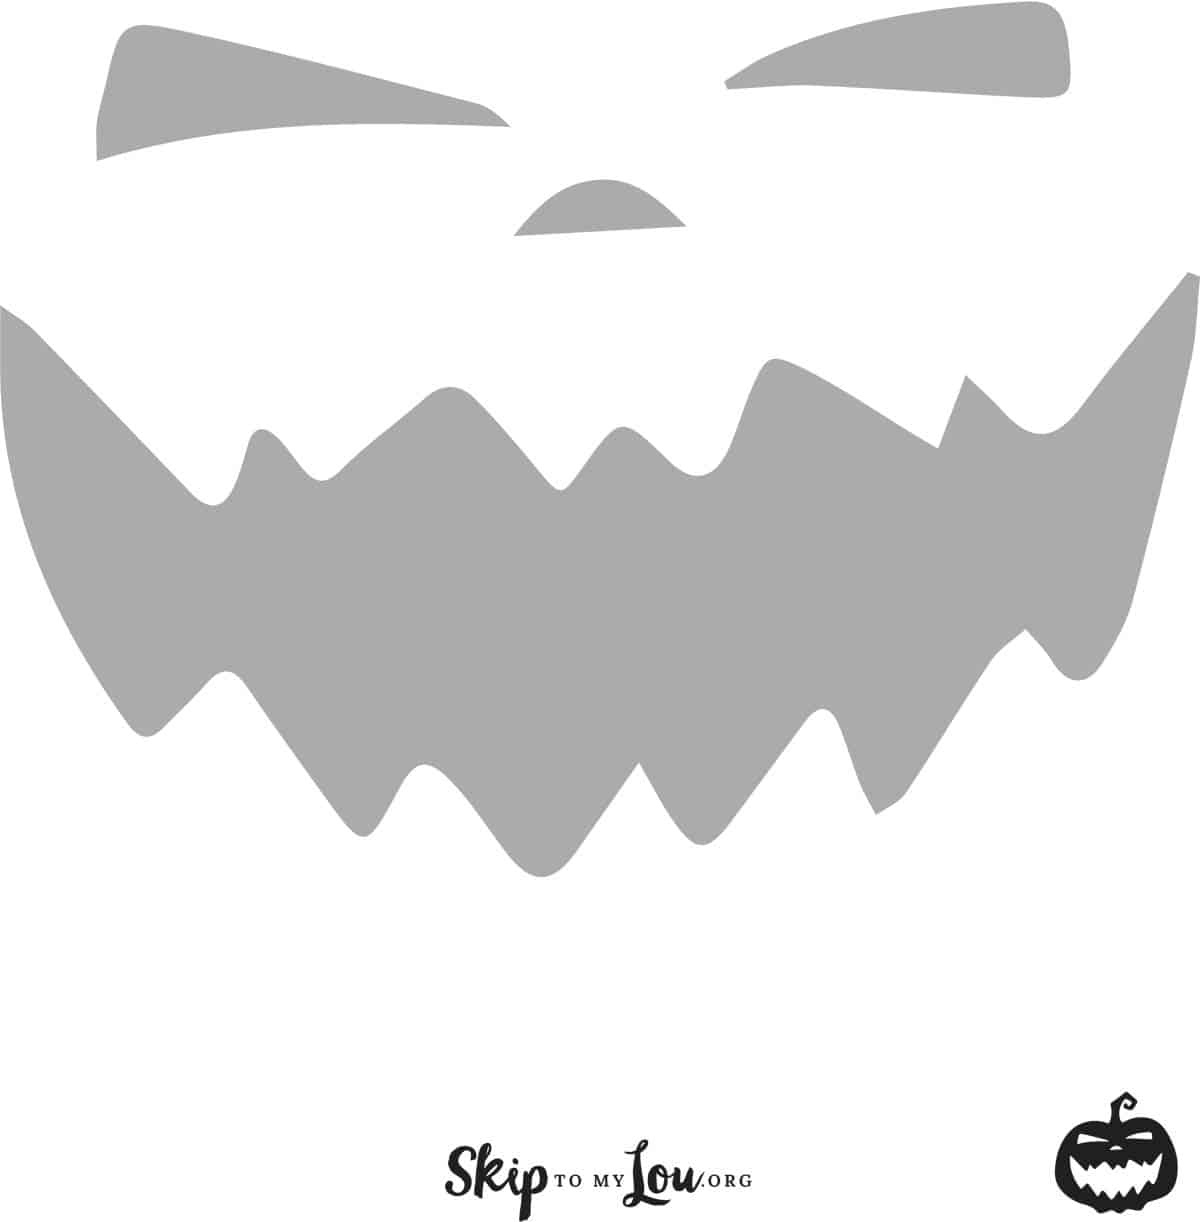 Cool Free Printable Pumpkin Carving Stencils - Skip To My Lou - Free Printable Pumpkin Stencils